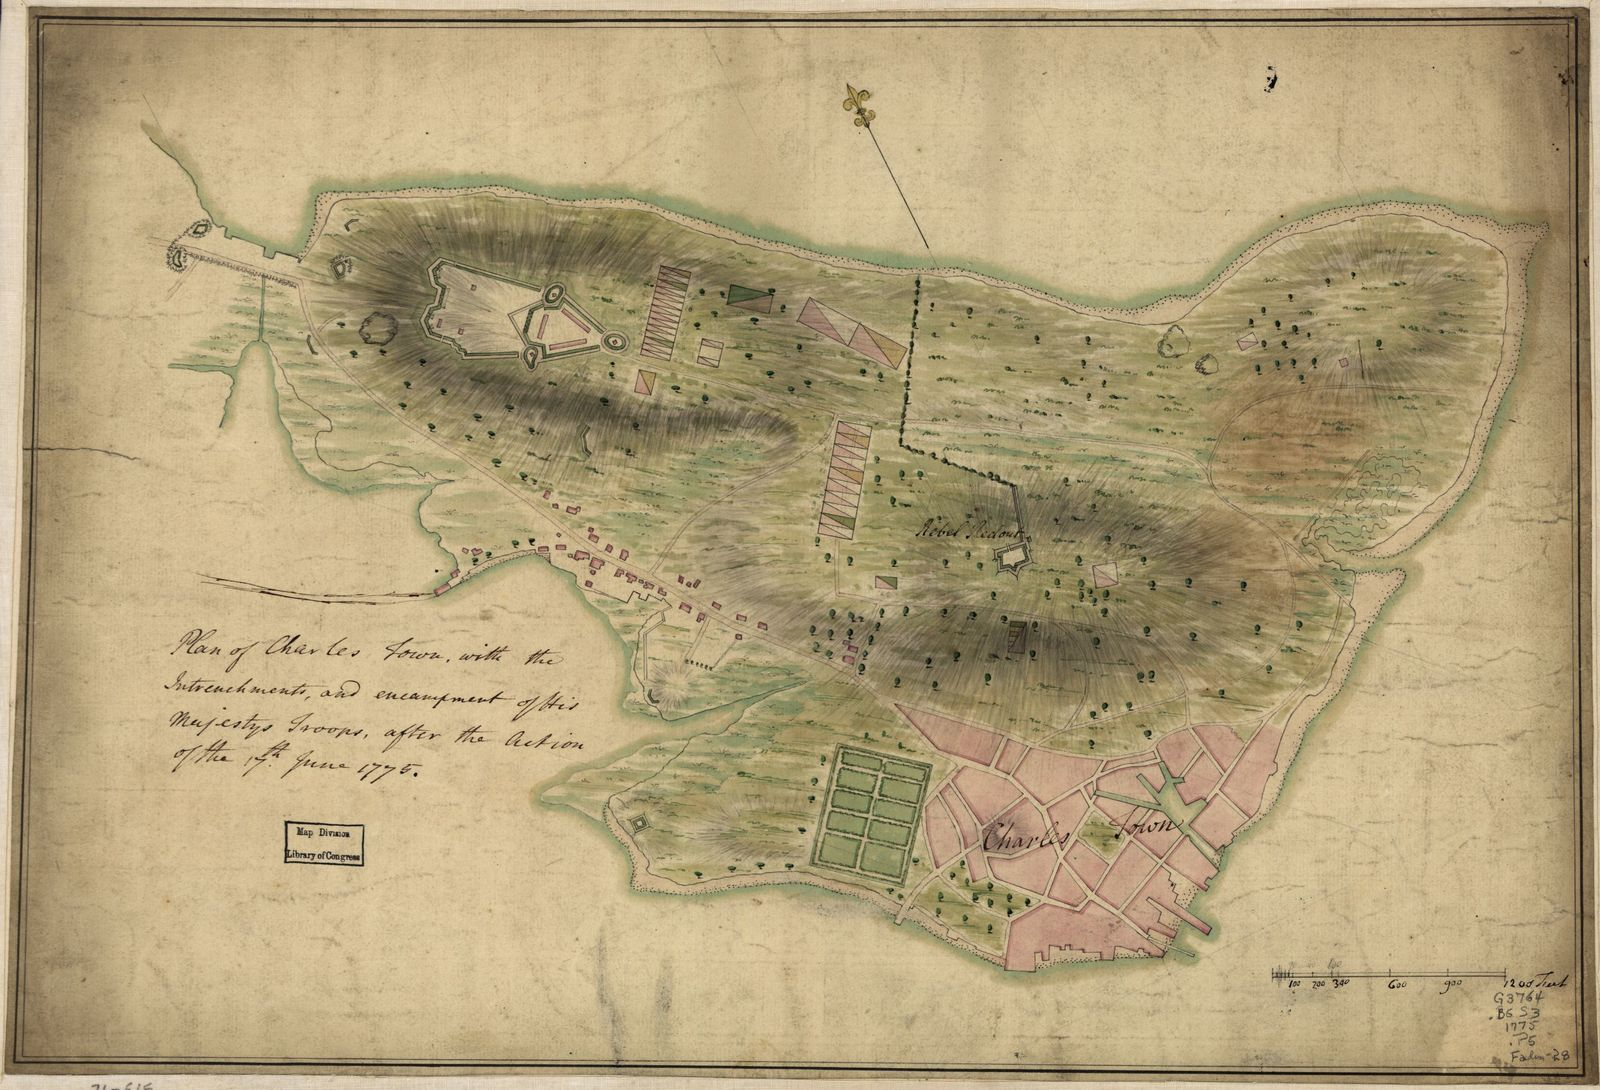 Plan of Charles Town, with the intrenchments, and encampment of His Majesty's troops, after the action of the 17th. June 1775.